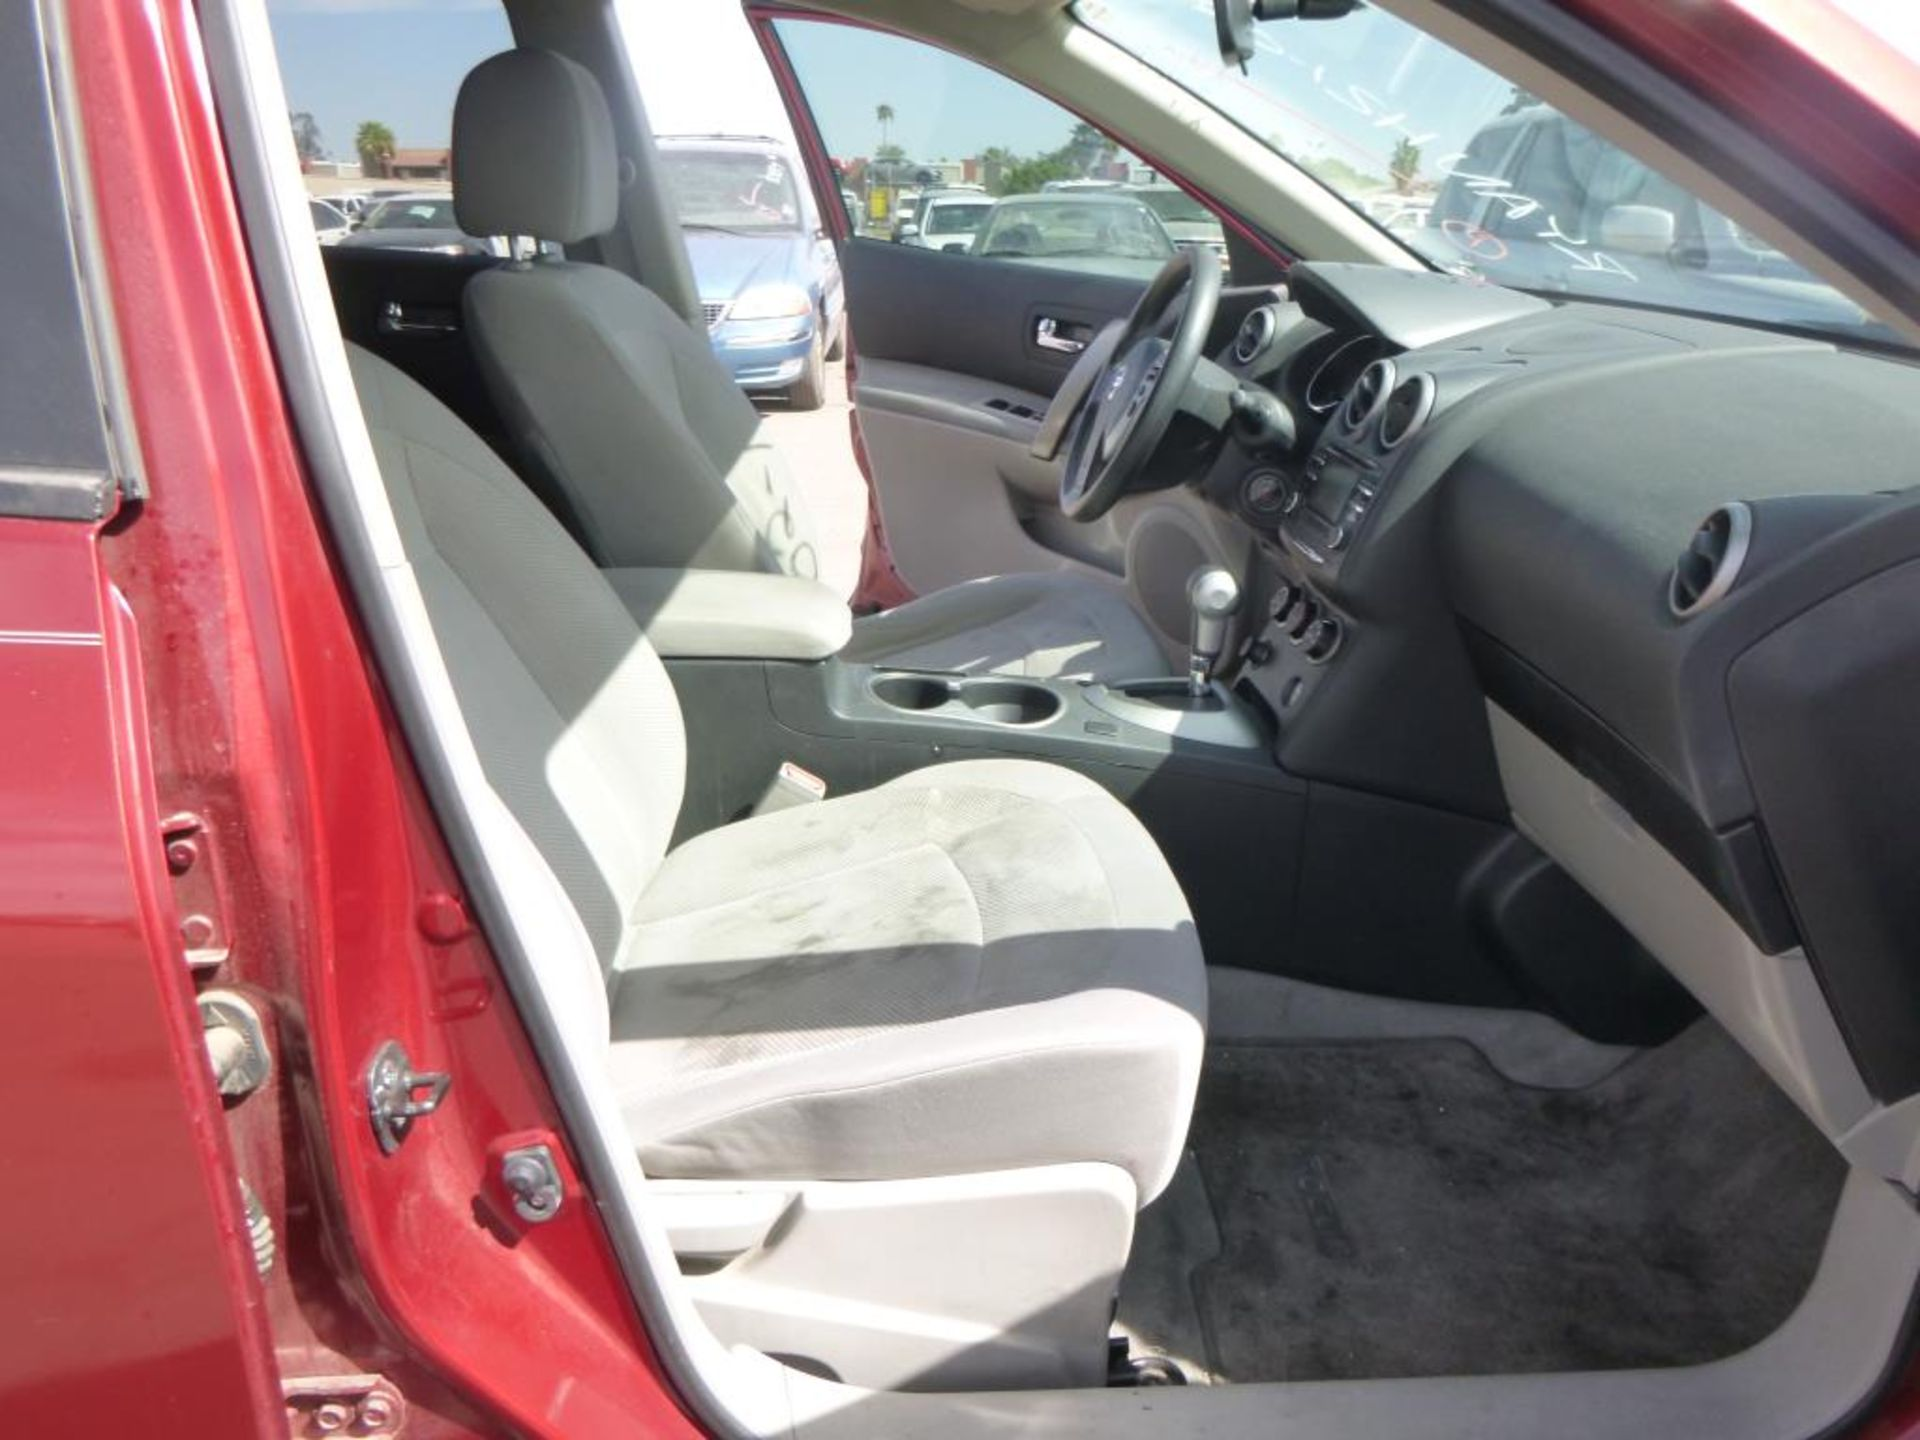 2012 Nissan Rogue - Image 9 of 14